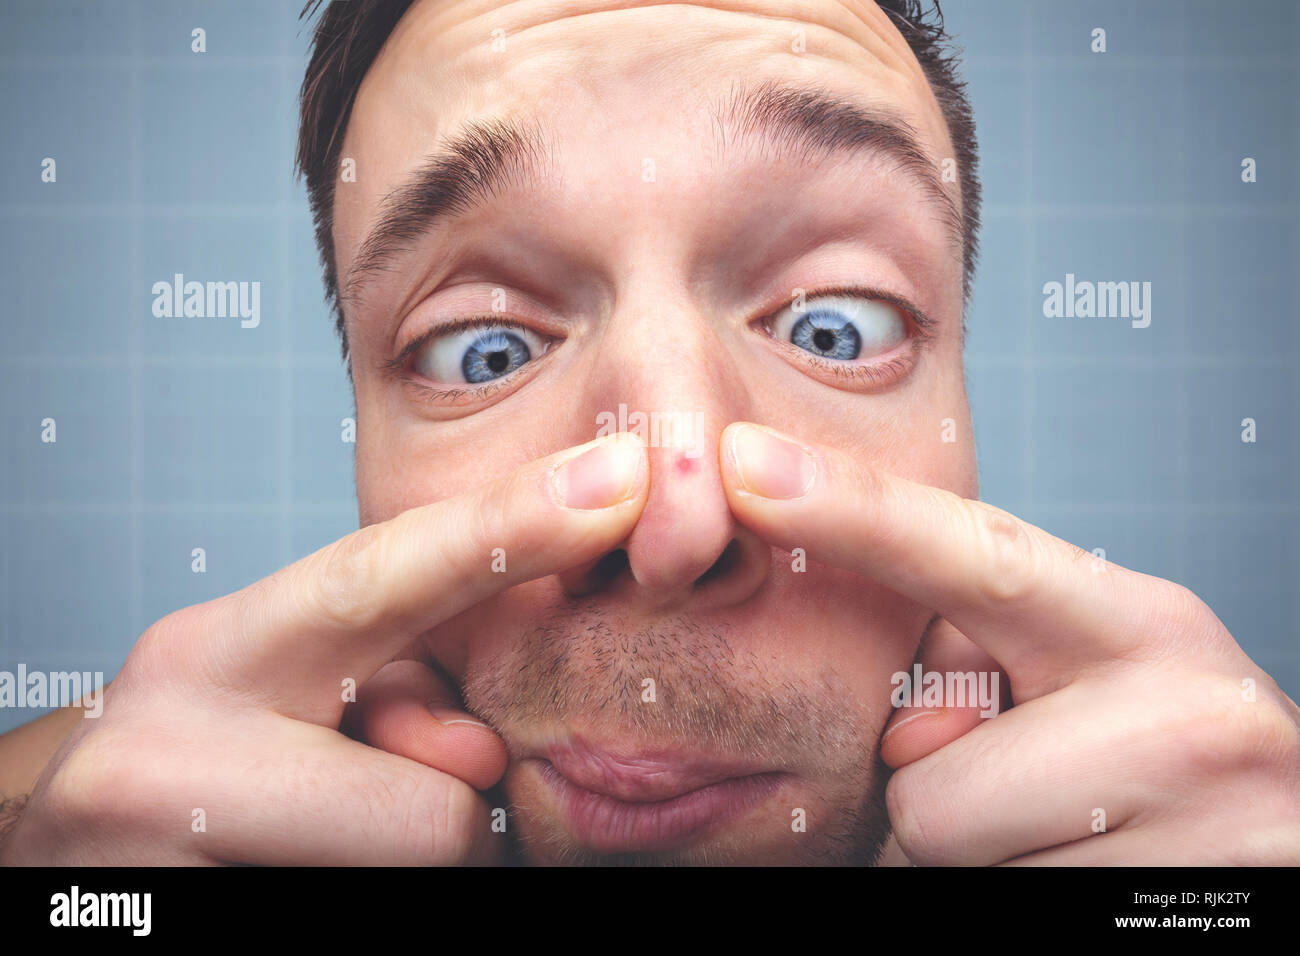 Funny portrait of a man with a pimple on the nose - Stock Image